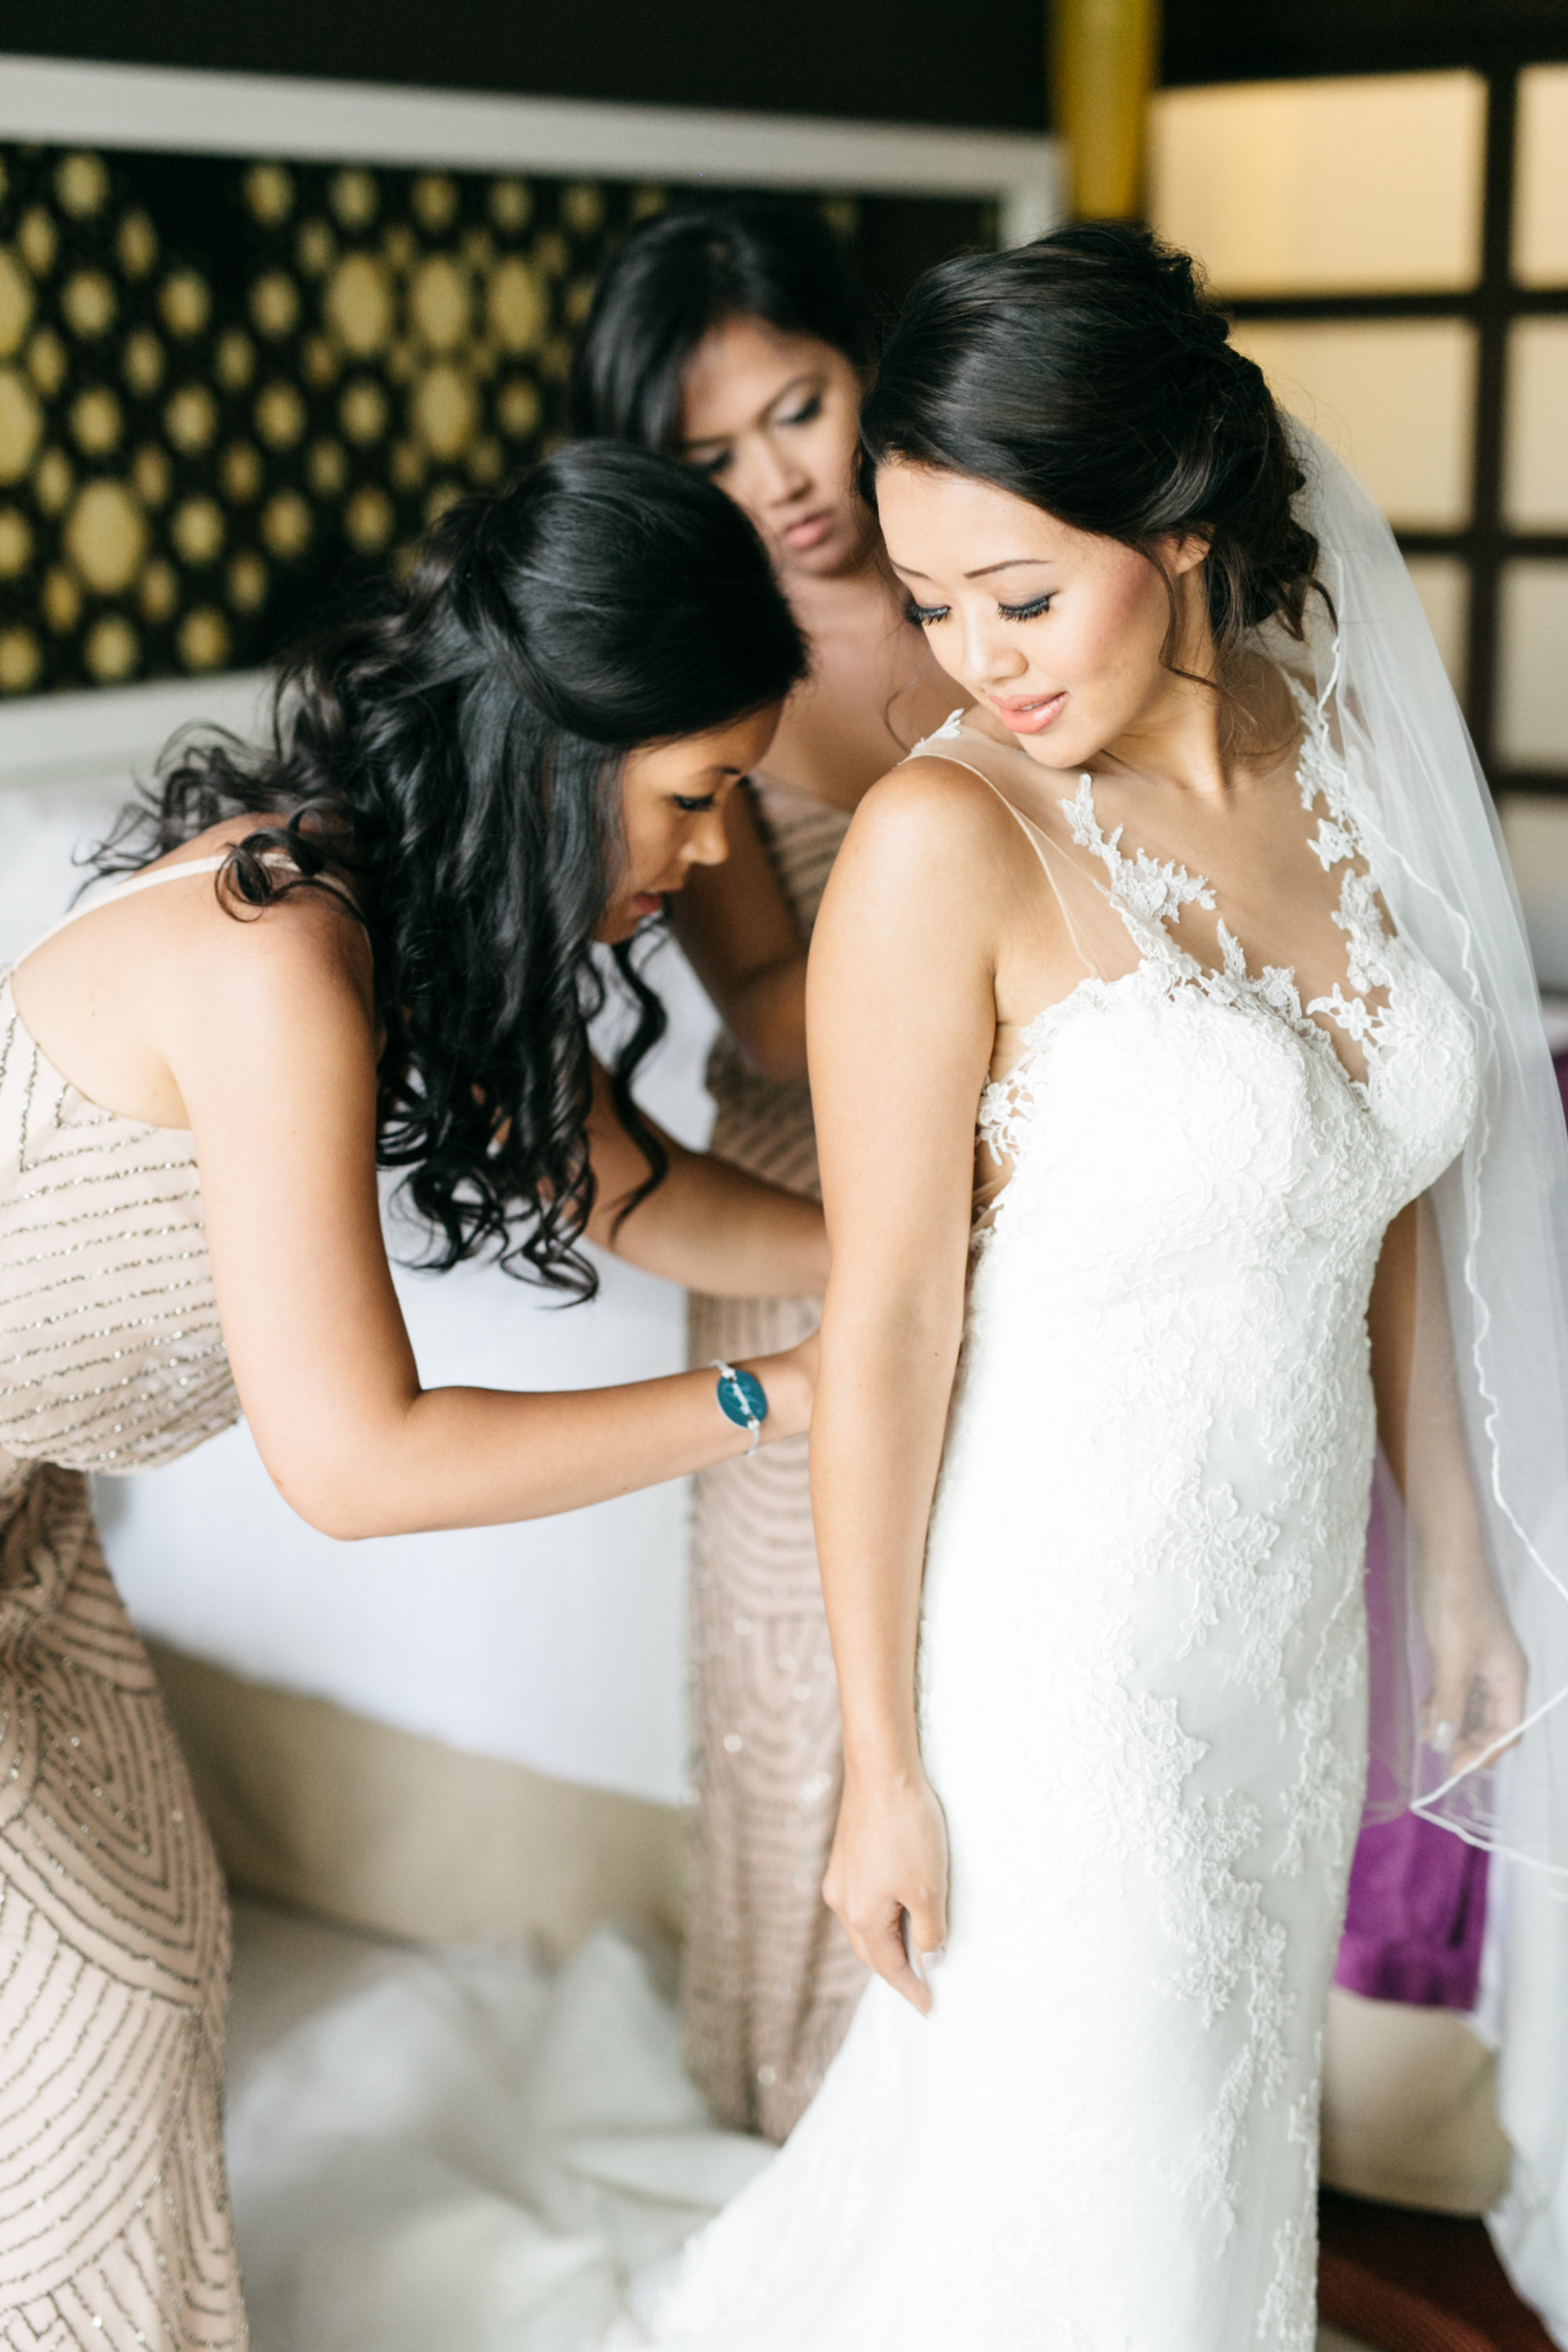 Bride getting ready at Royalton White Sands Resort - Jamaica